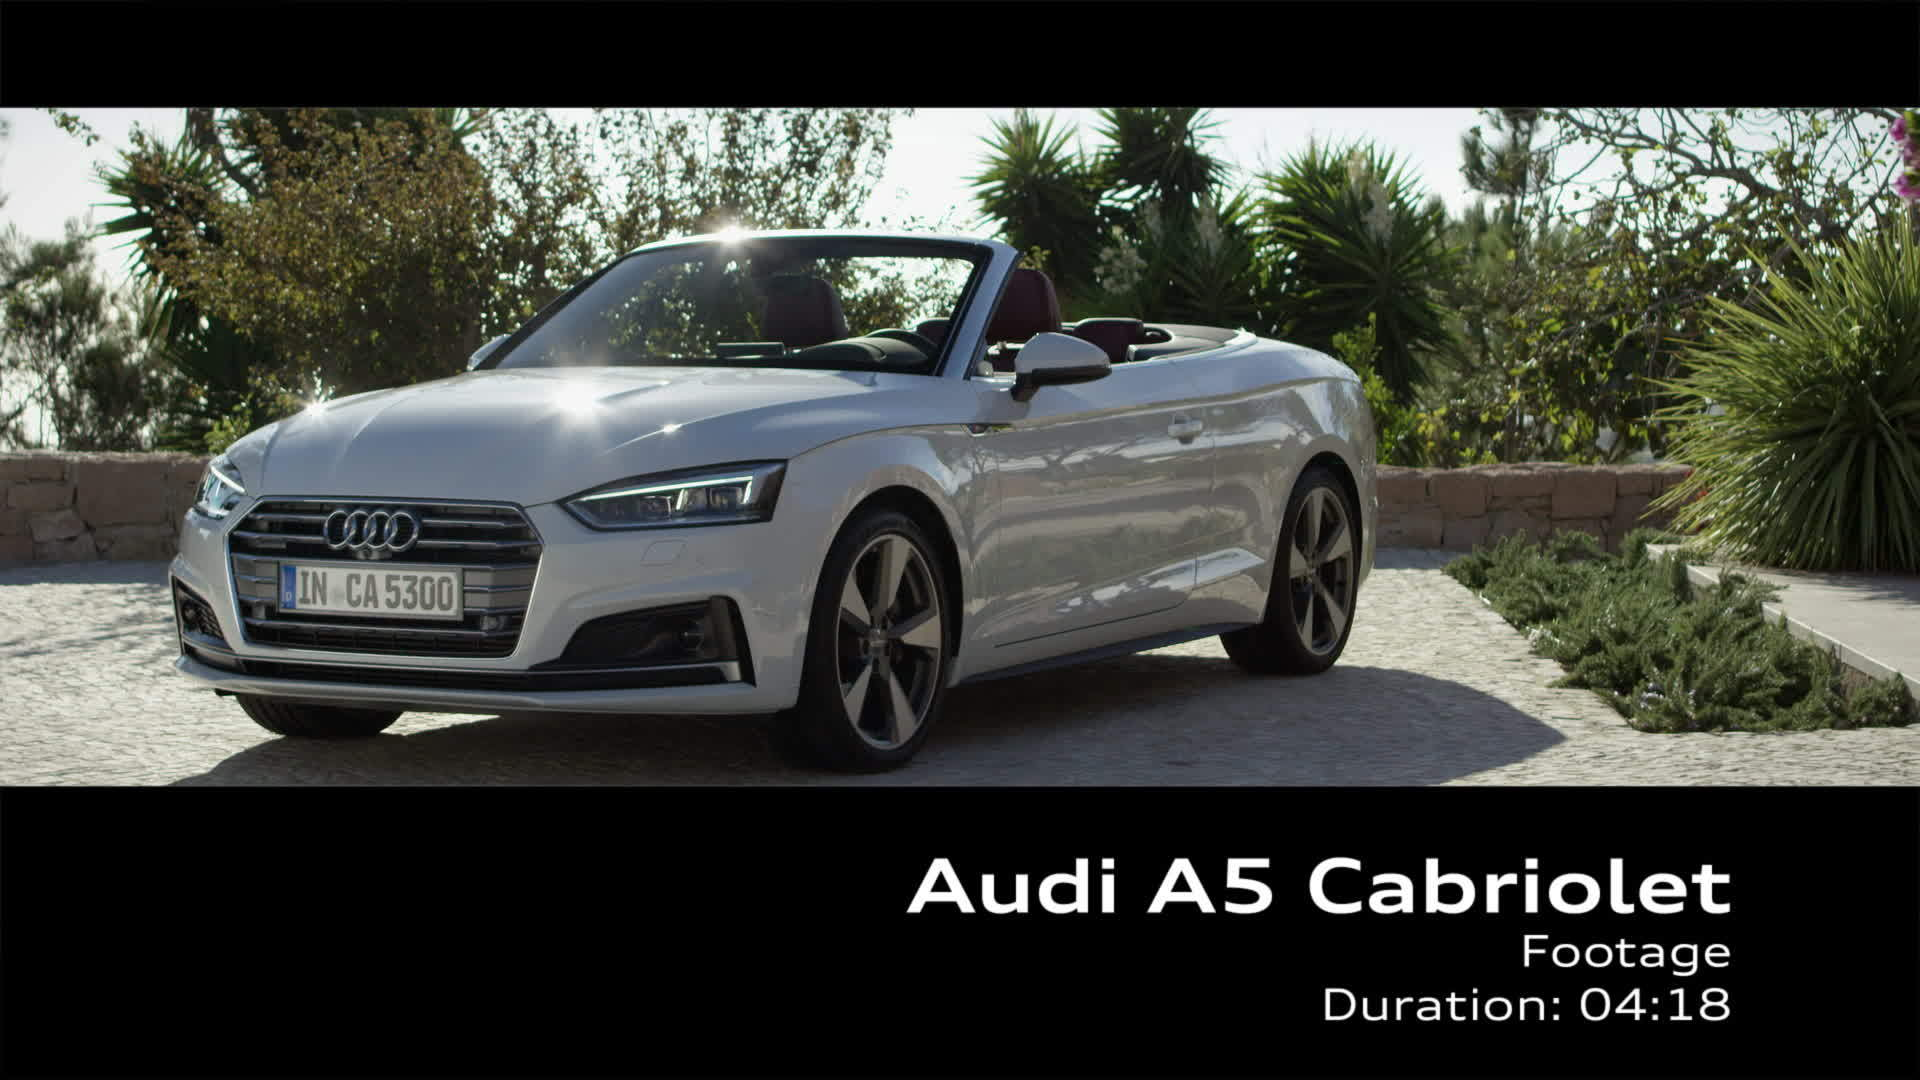 audi a5 cabriolet audi mediacenter. Black Bedroom Furniture Sets. Home Design Ideas